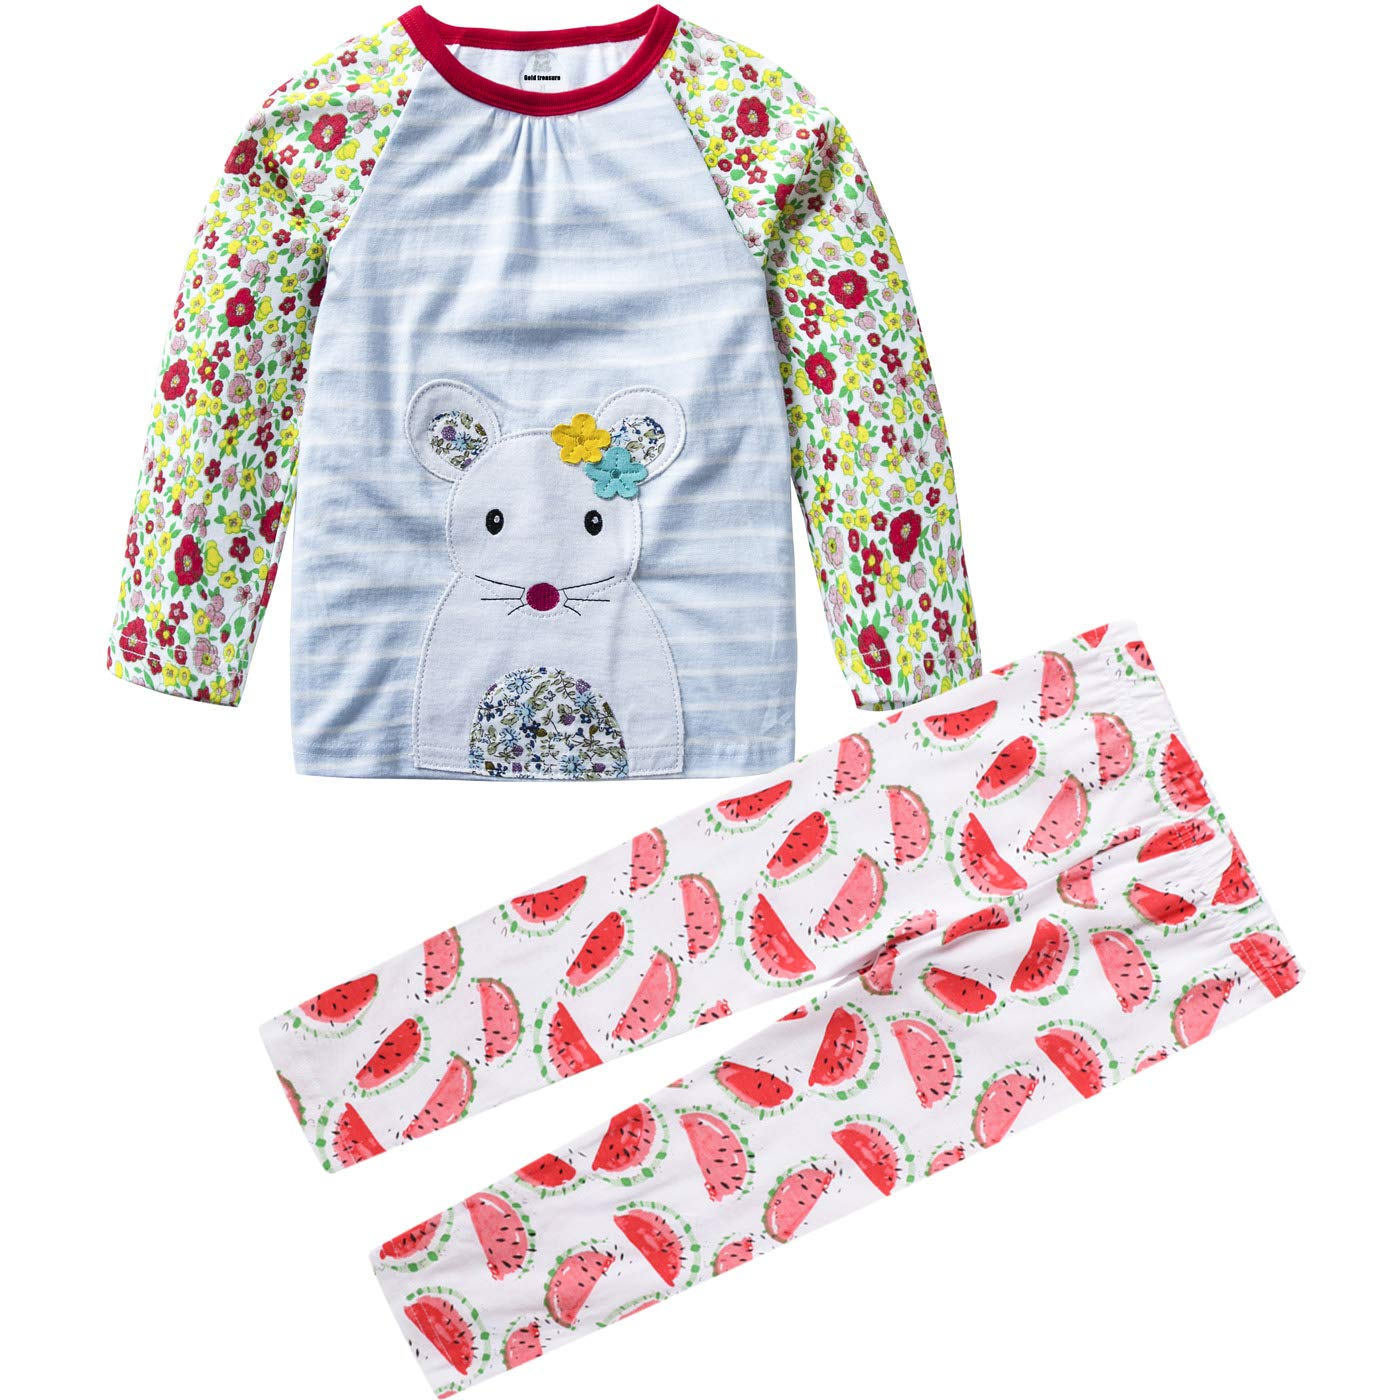 MSSMART Girls Clothes Toddler Cotton Outfits Kids Long Sleeve Tshirt Pants Sets 18M-7T